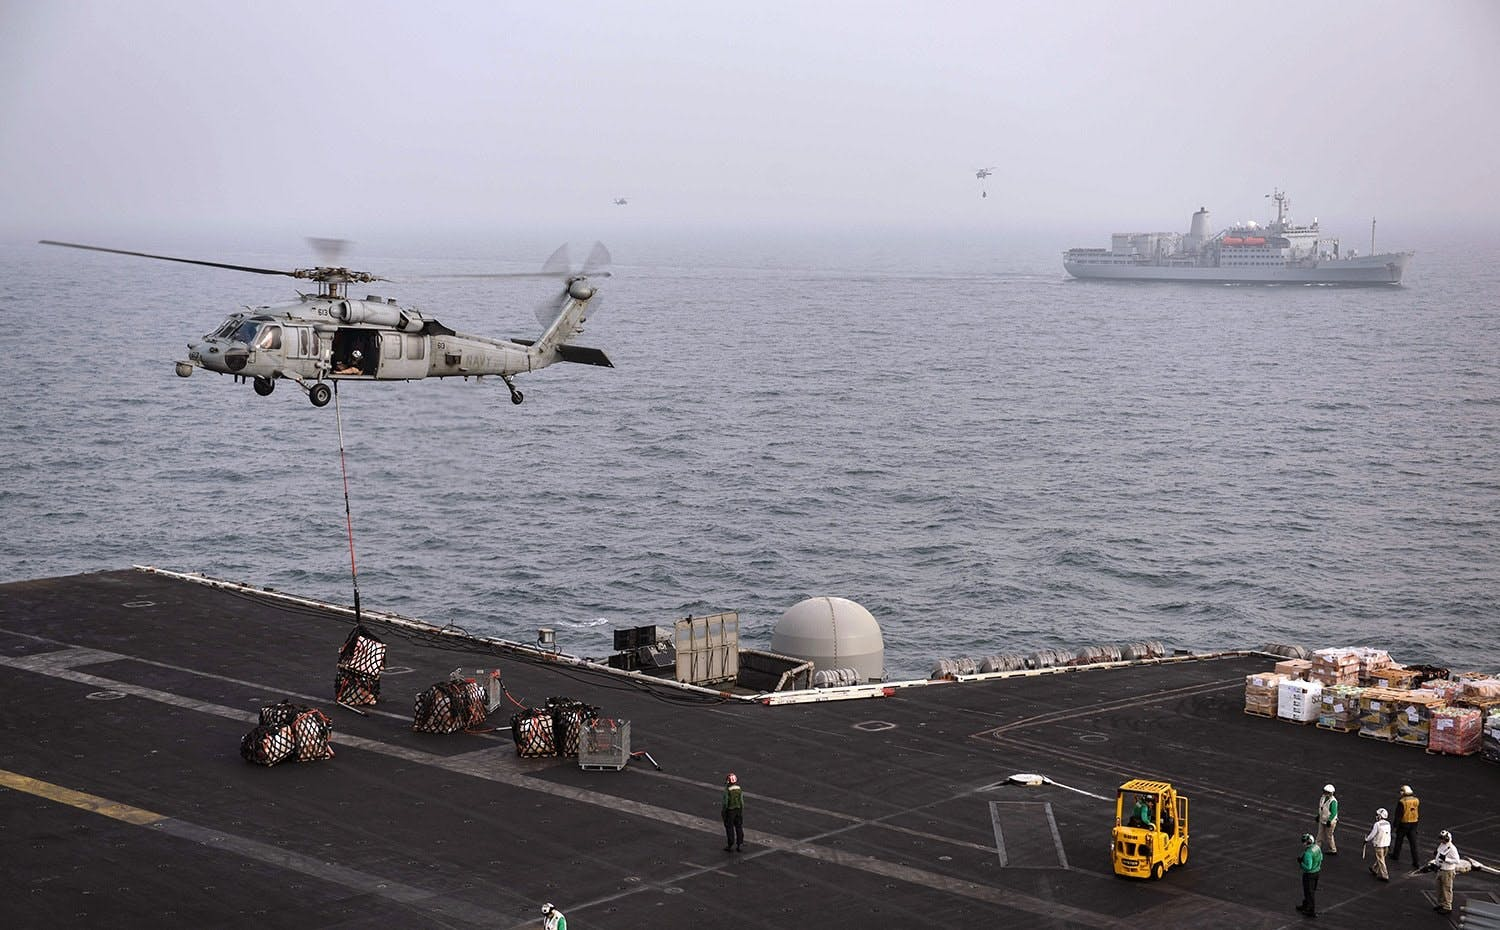 BAE Systems to enhance flight safety aboard large US Navy ships